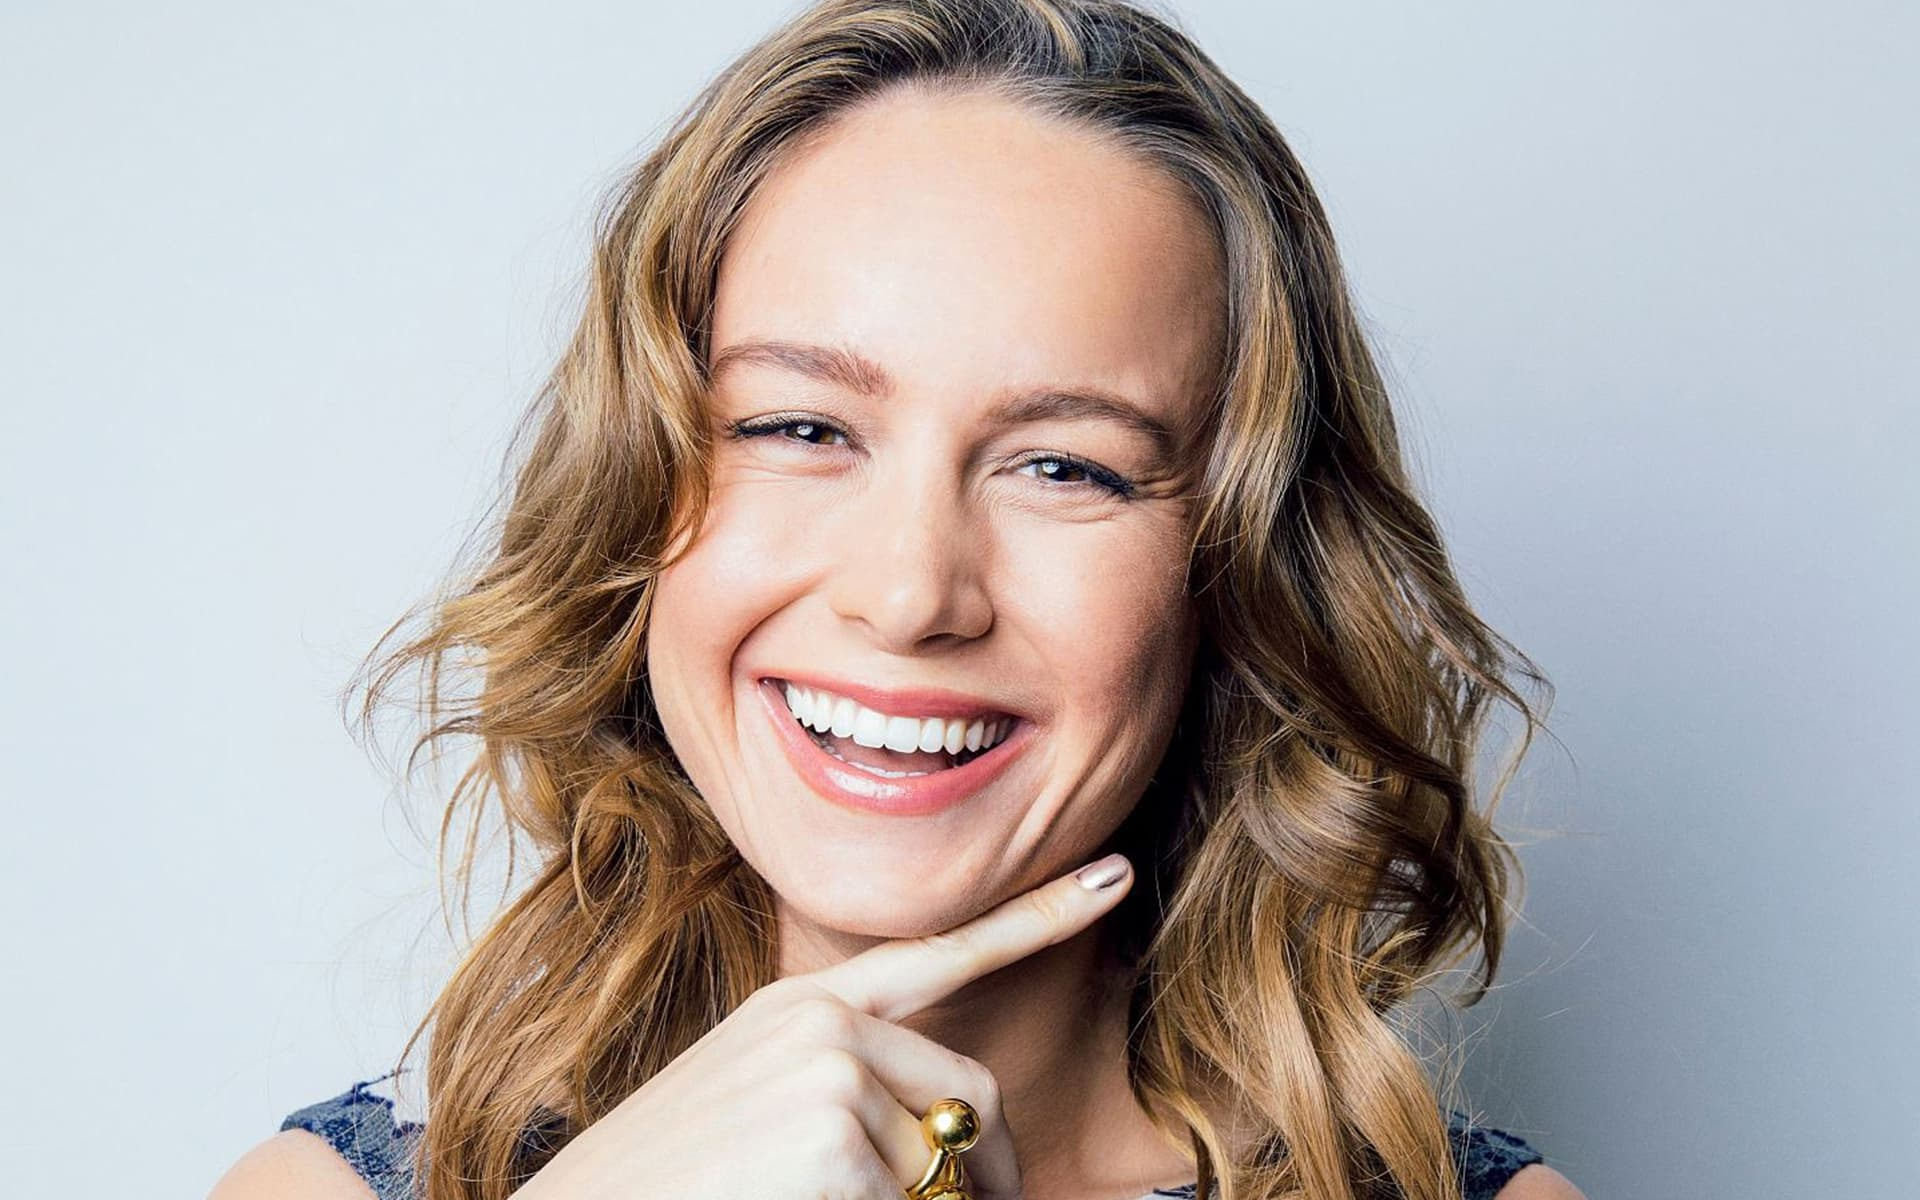 Brie Larson wallpaper photo HQ happy face